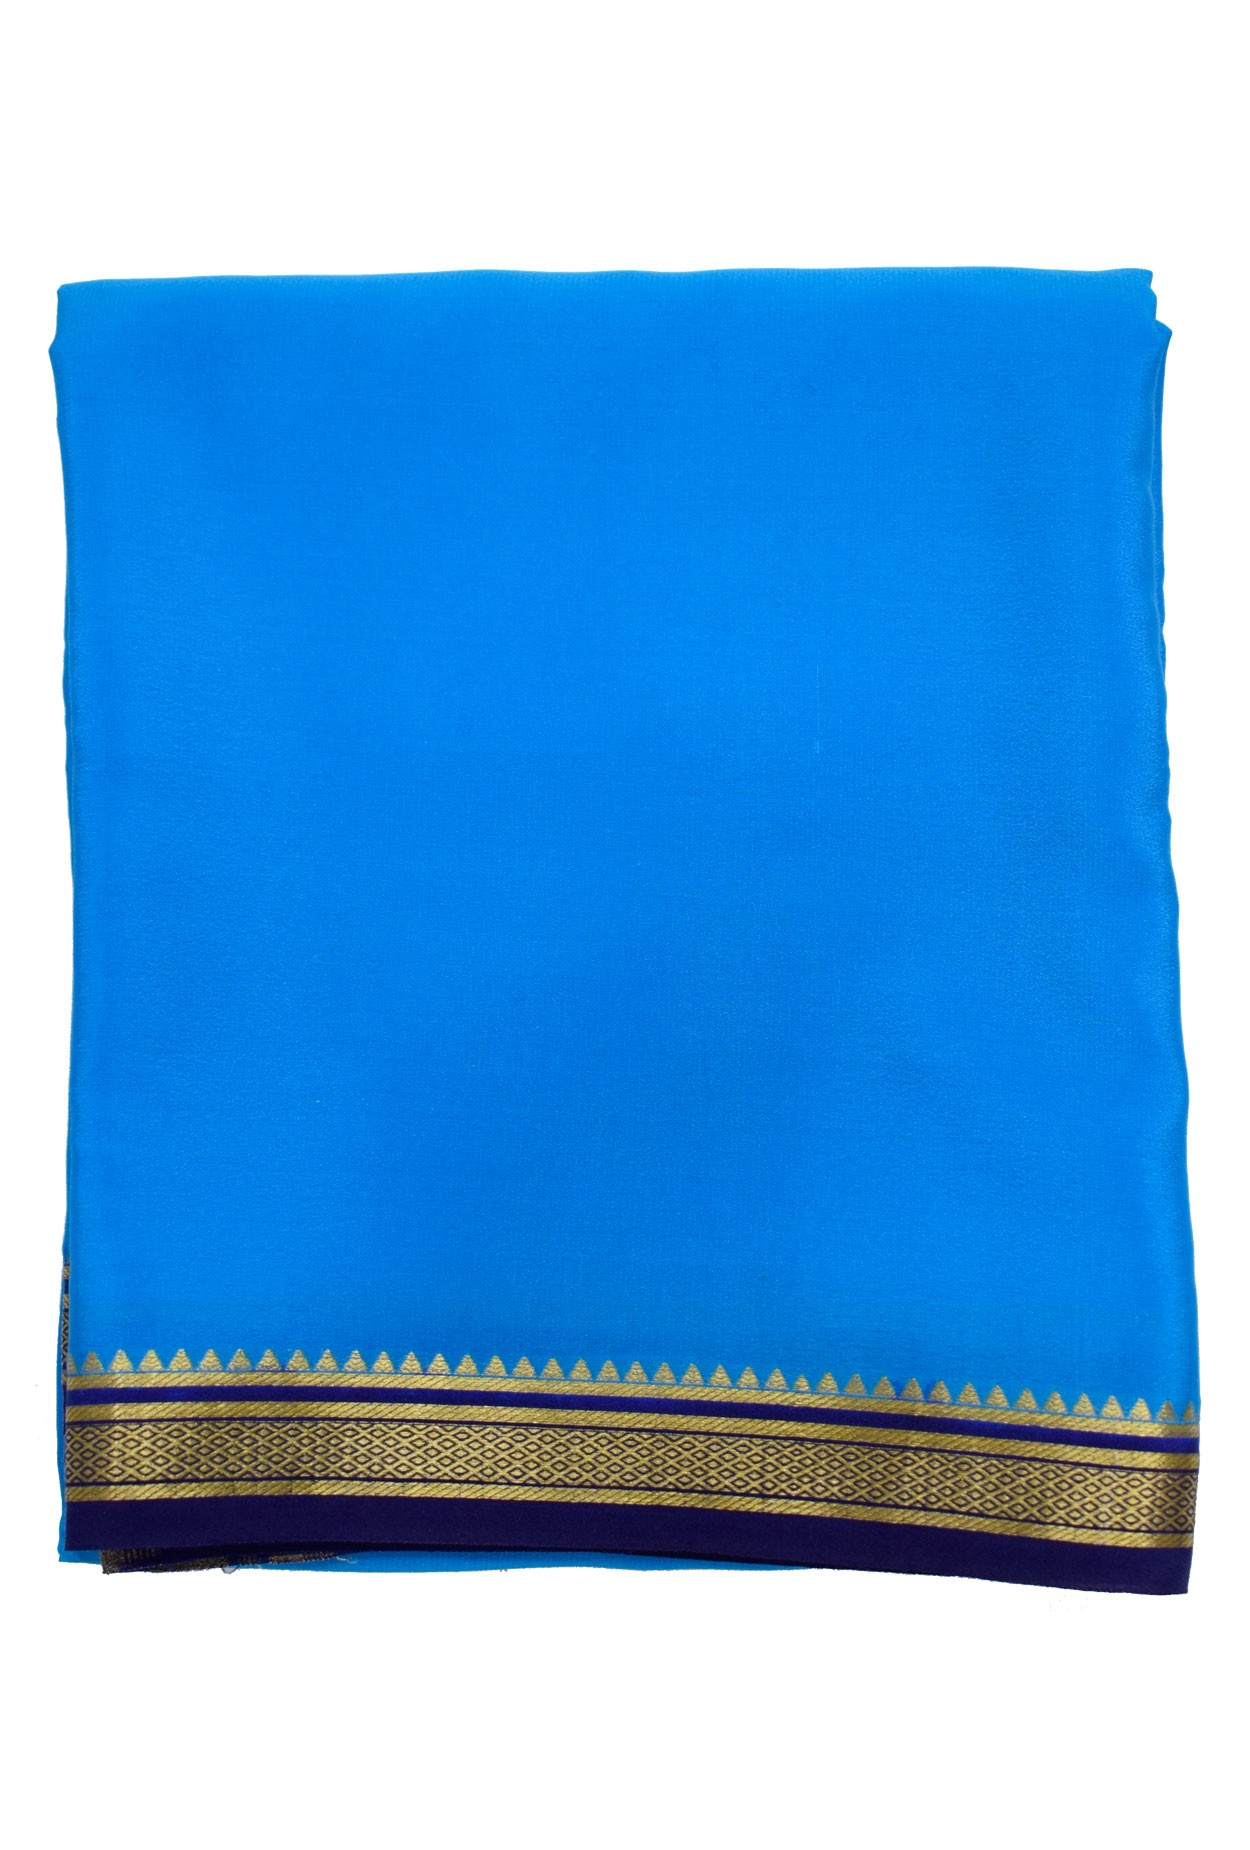 100% Pure Crape Mysore Traditional Silk Saree SC38-ANANDA - navy blue